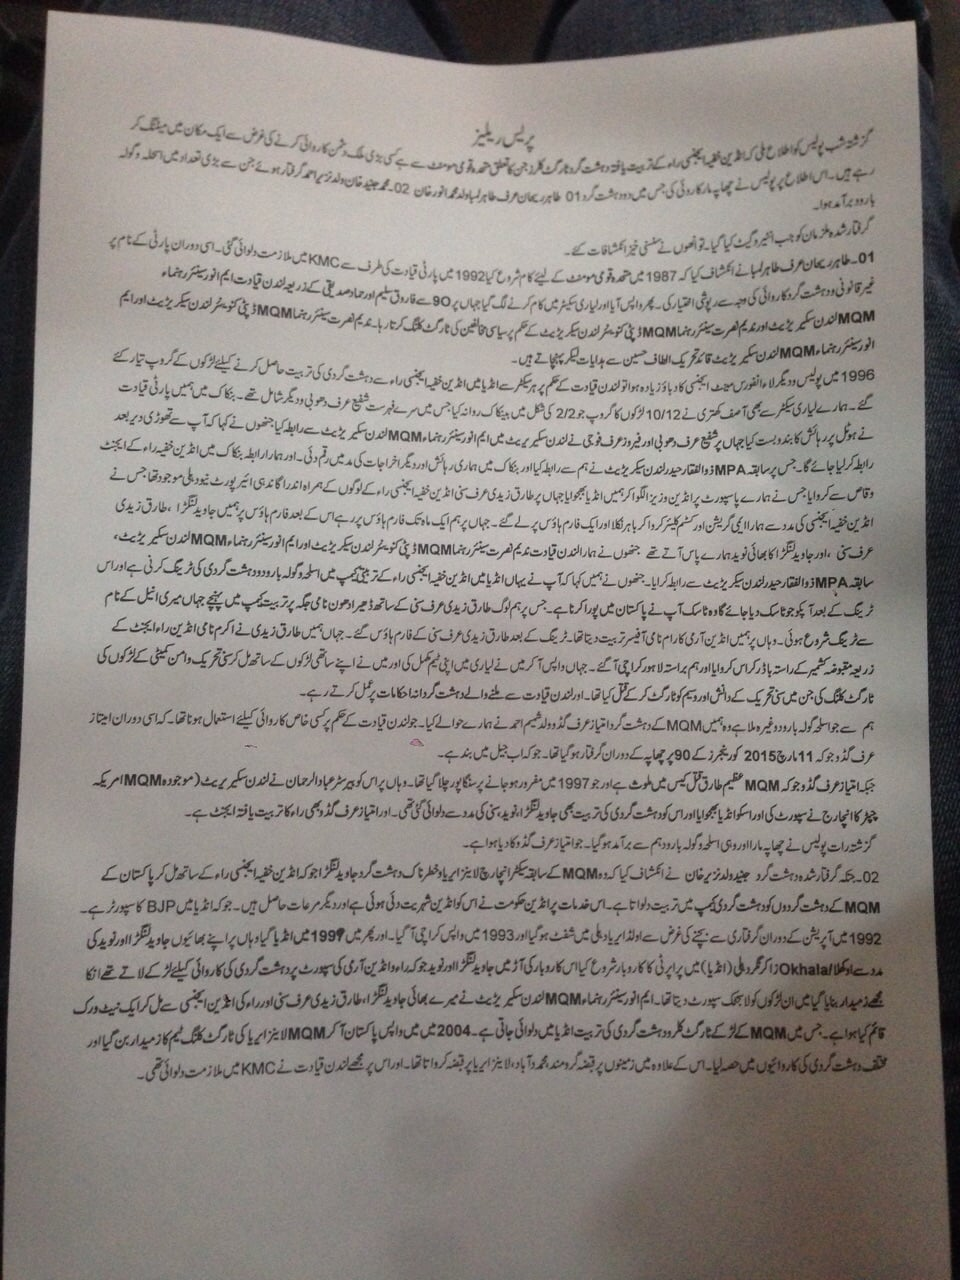 Copy of the statement released by police.